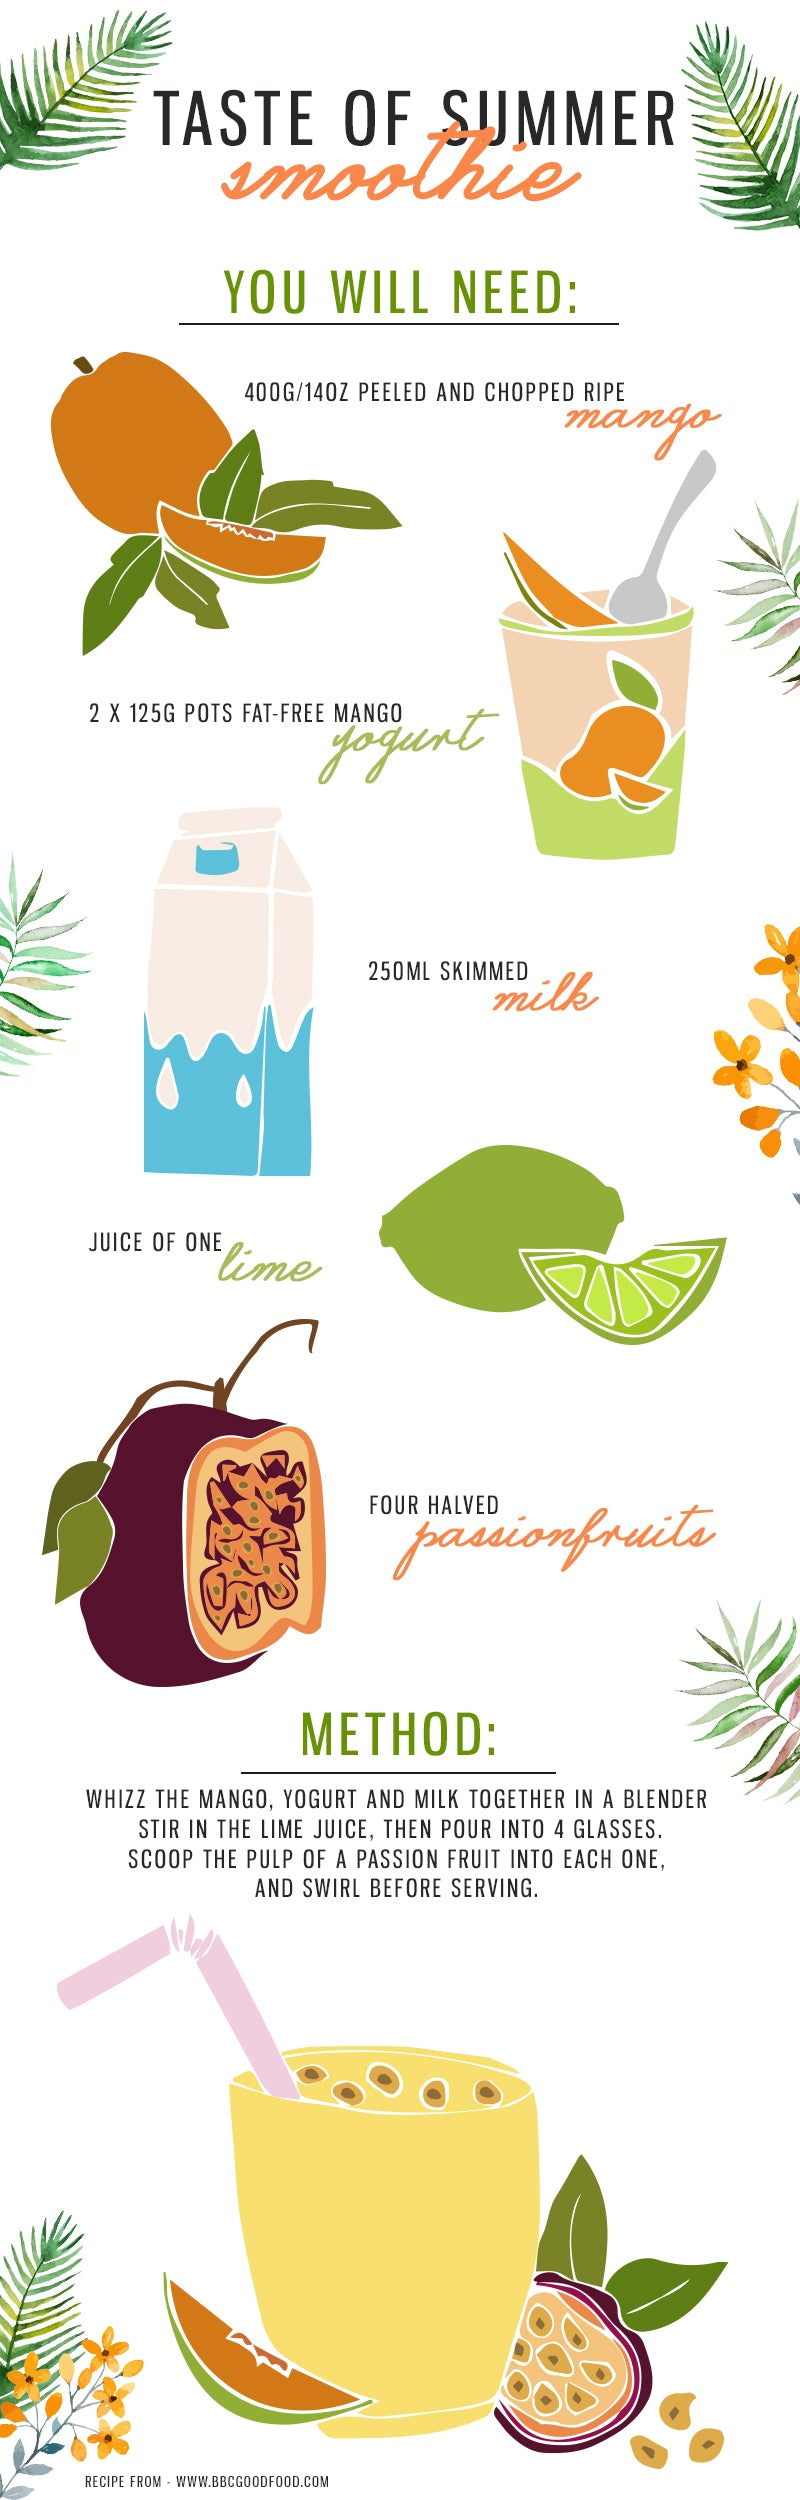 taste-the-summer-recipe---infographic